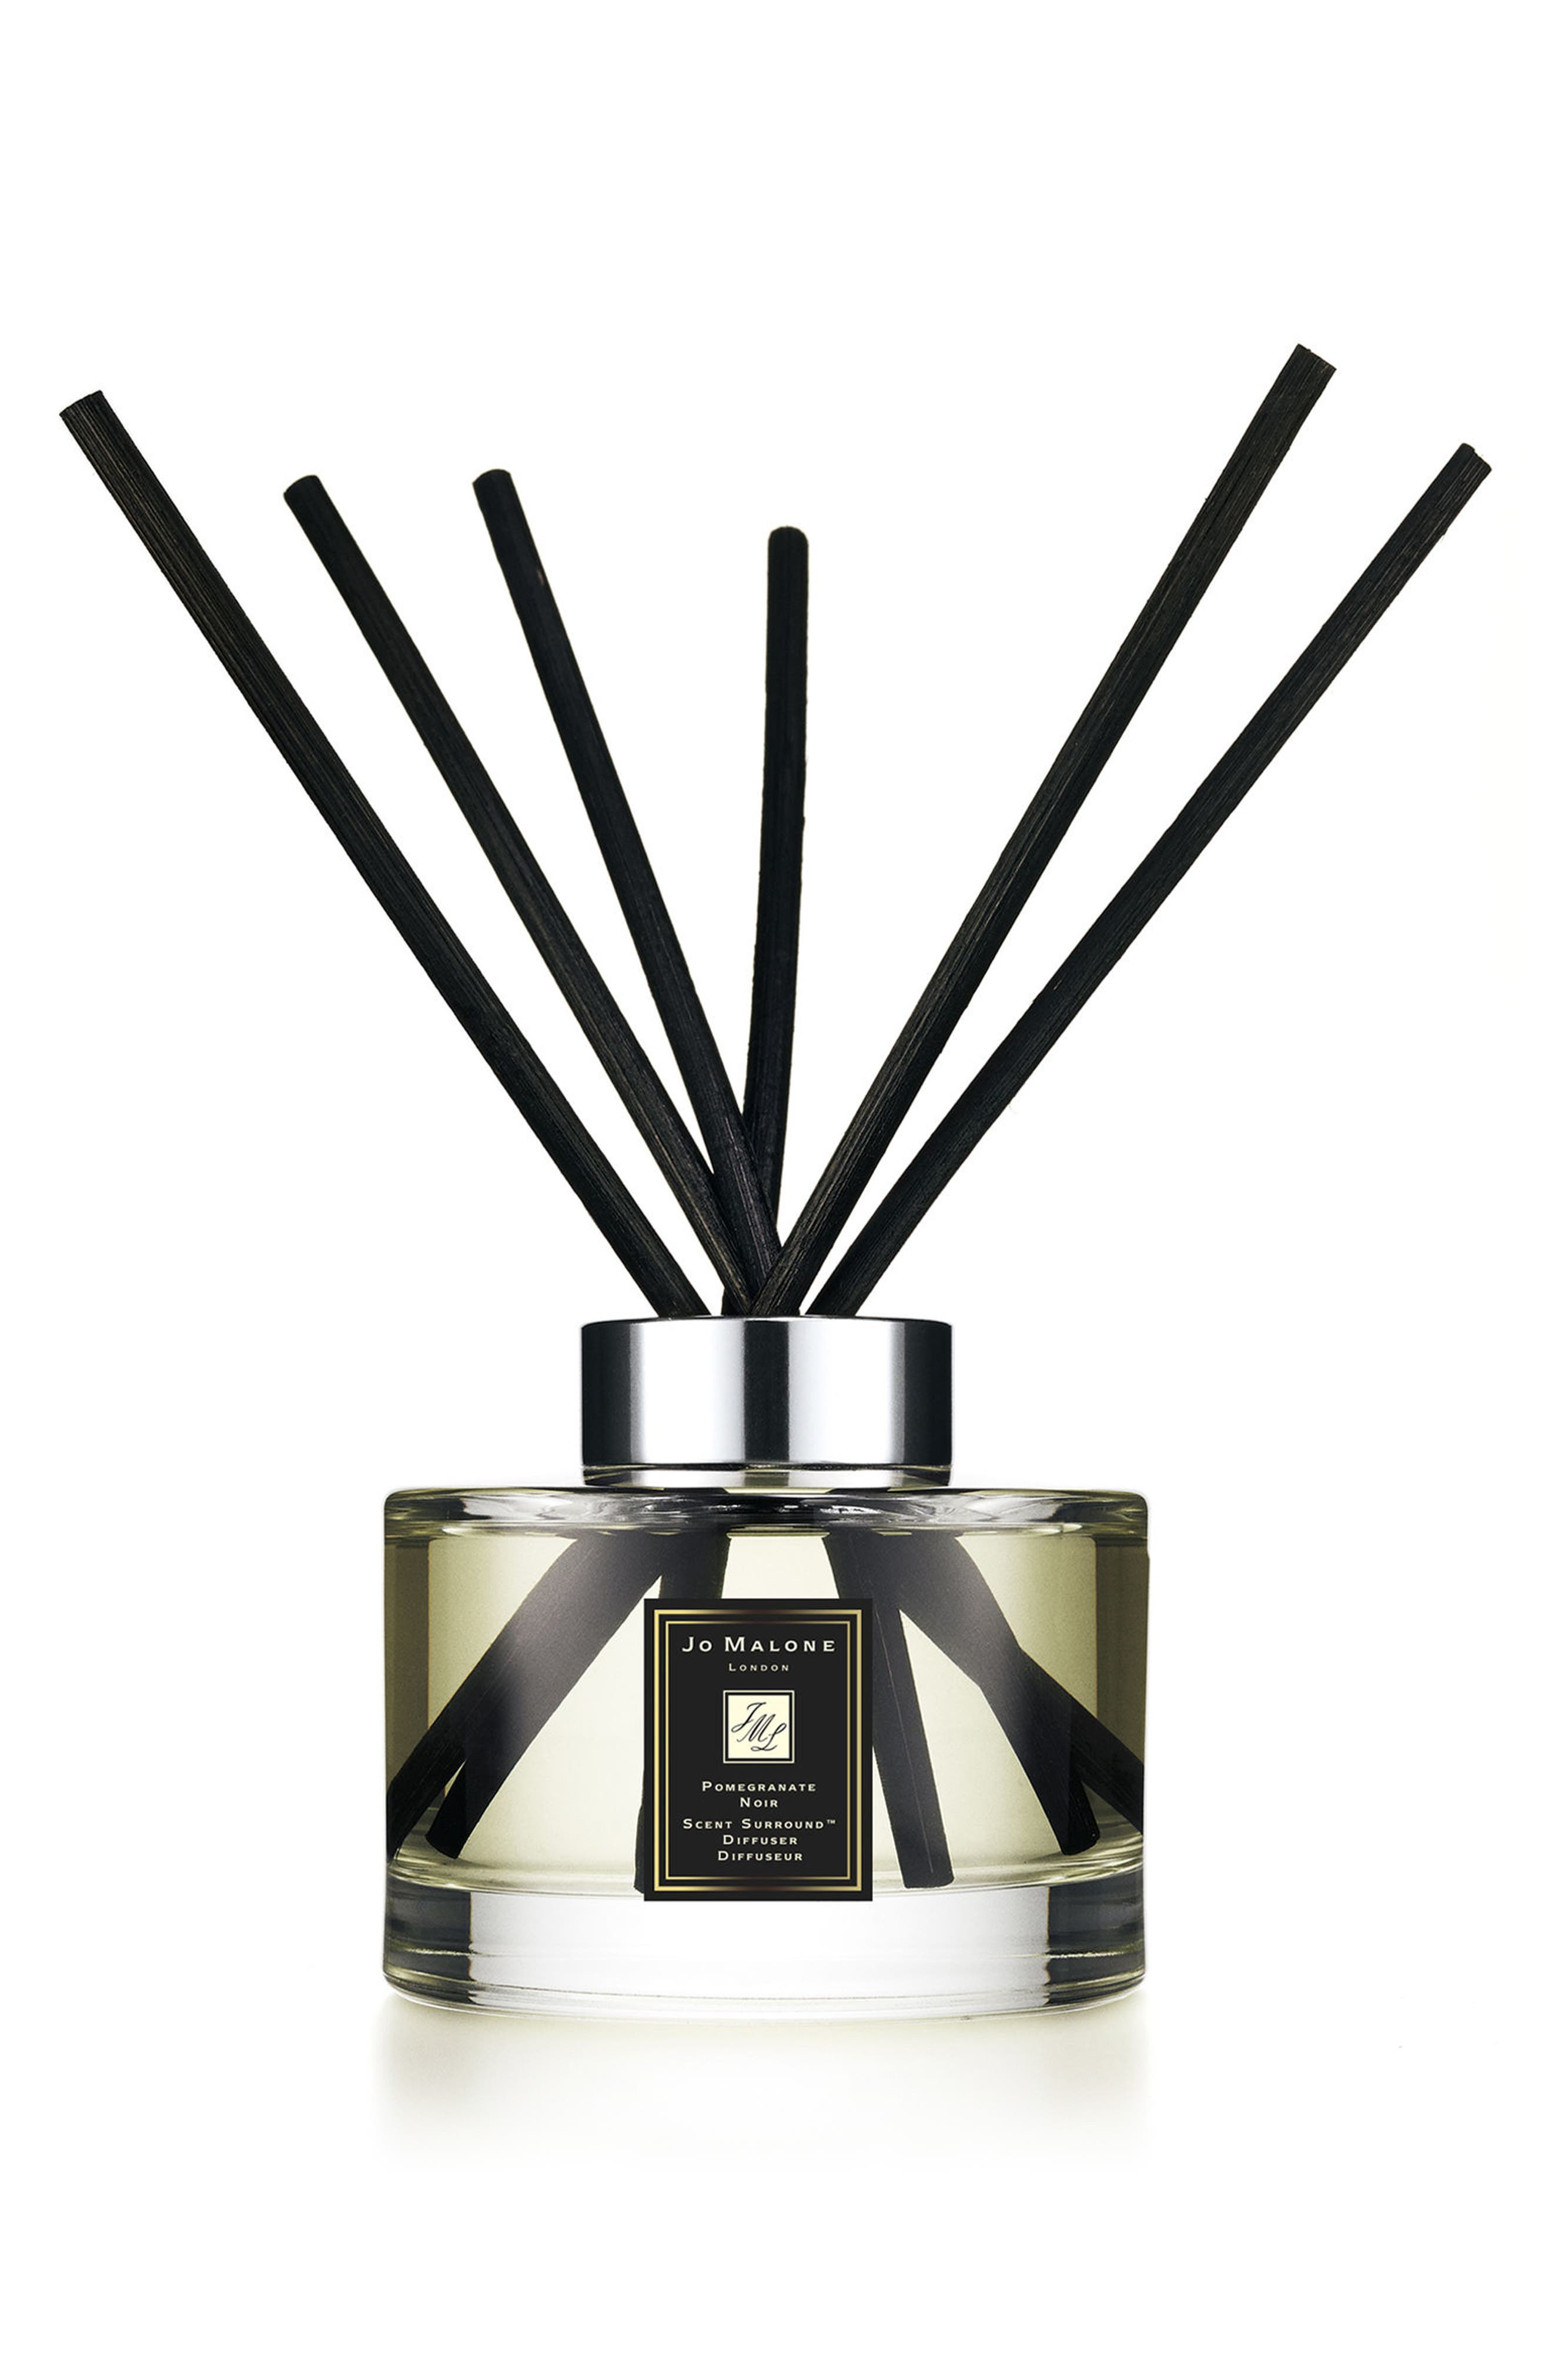 Jo Malone™ Pomegranate Noir Scent Surround™ Diffuser